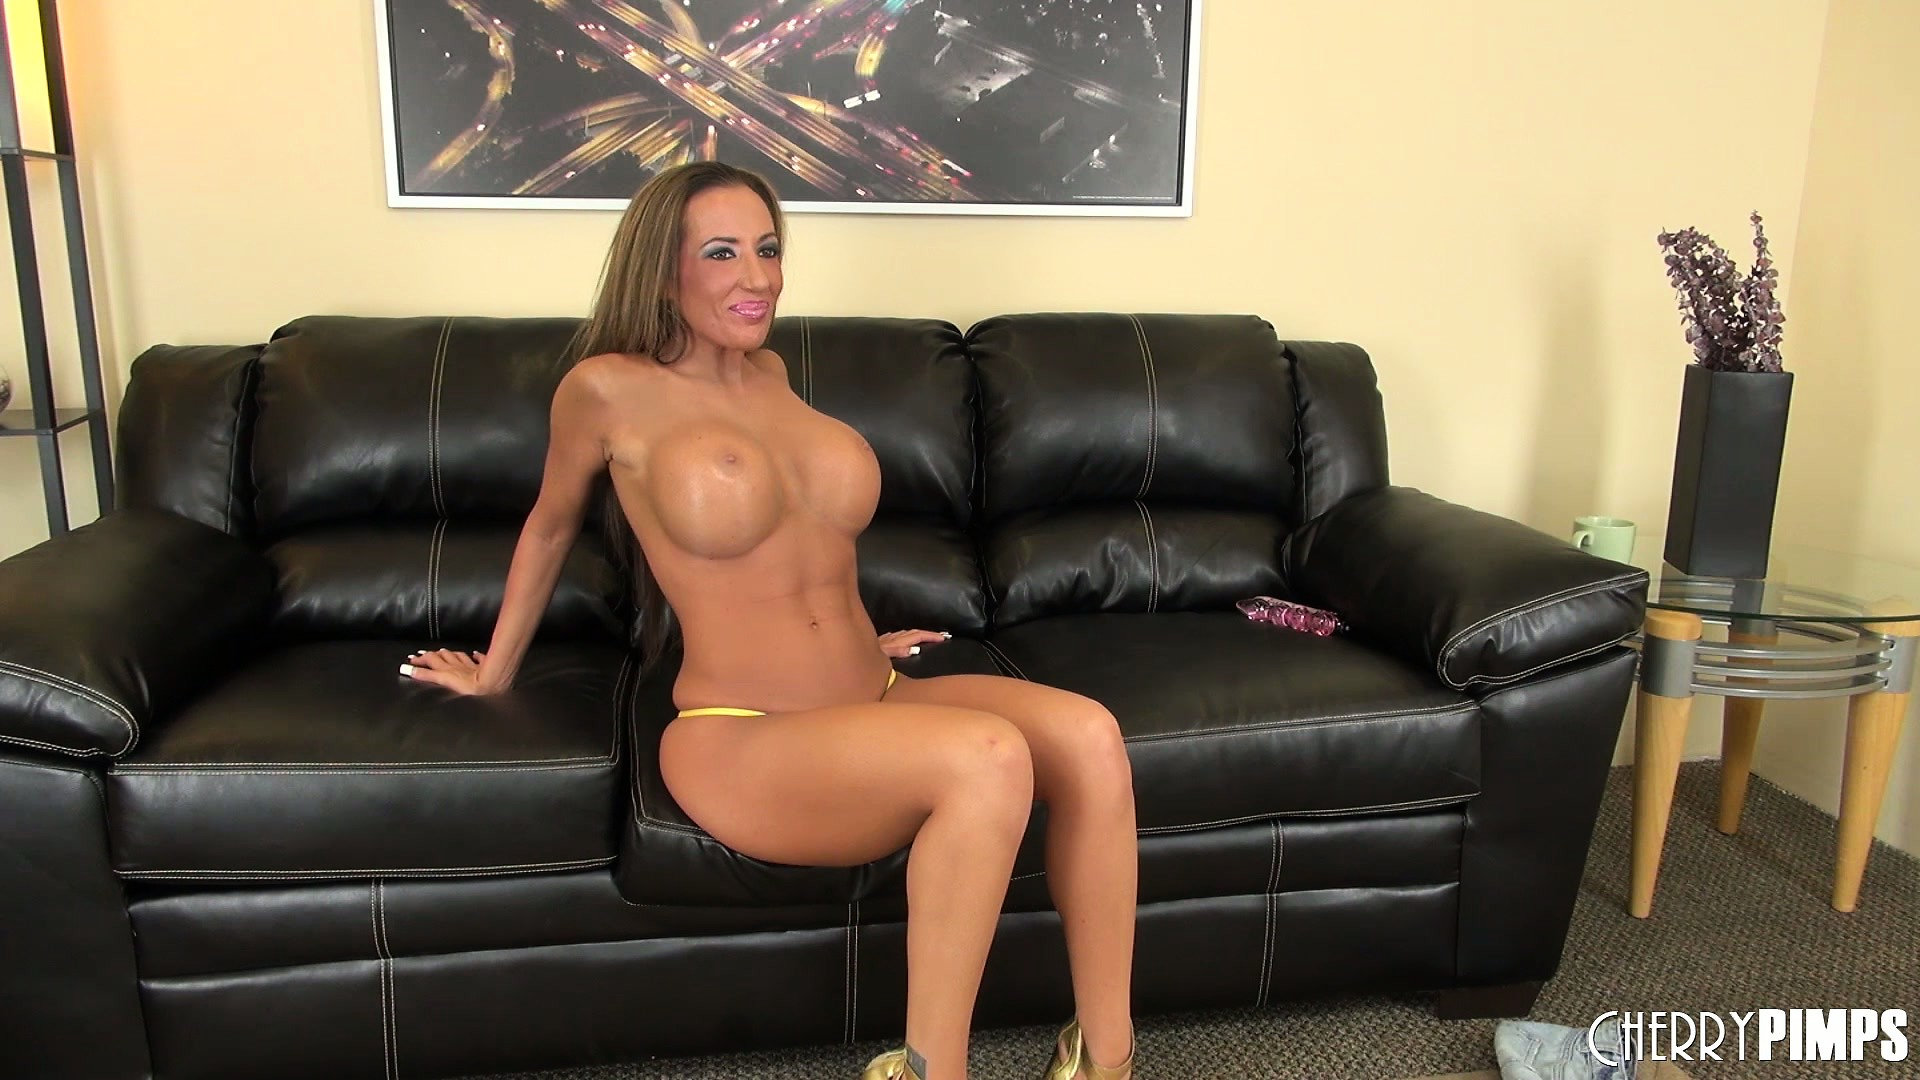 Porn Tube of Brunette Bimbo Built Like An Amazon Poses In A Bikini And Heels